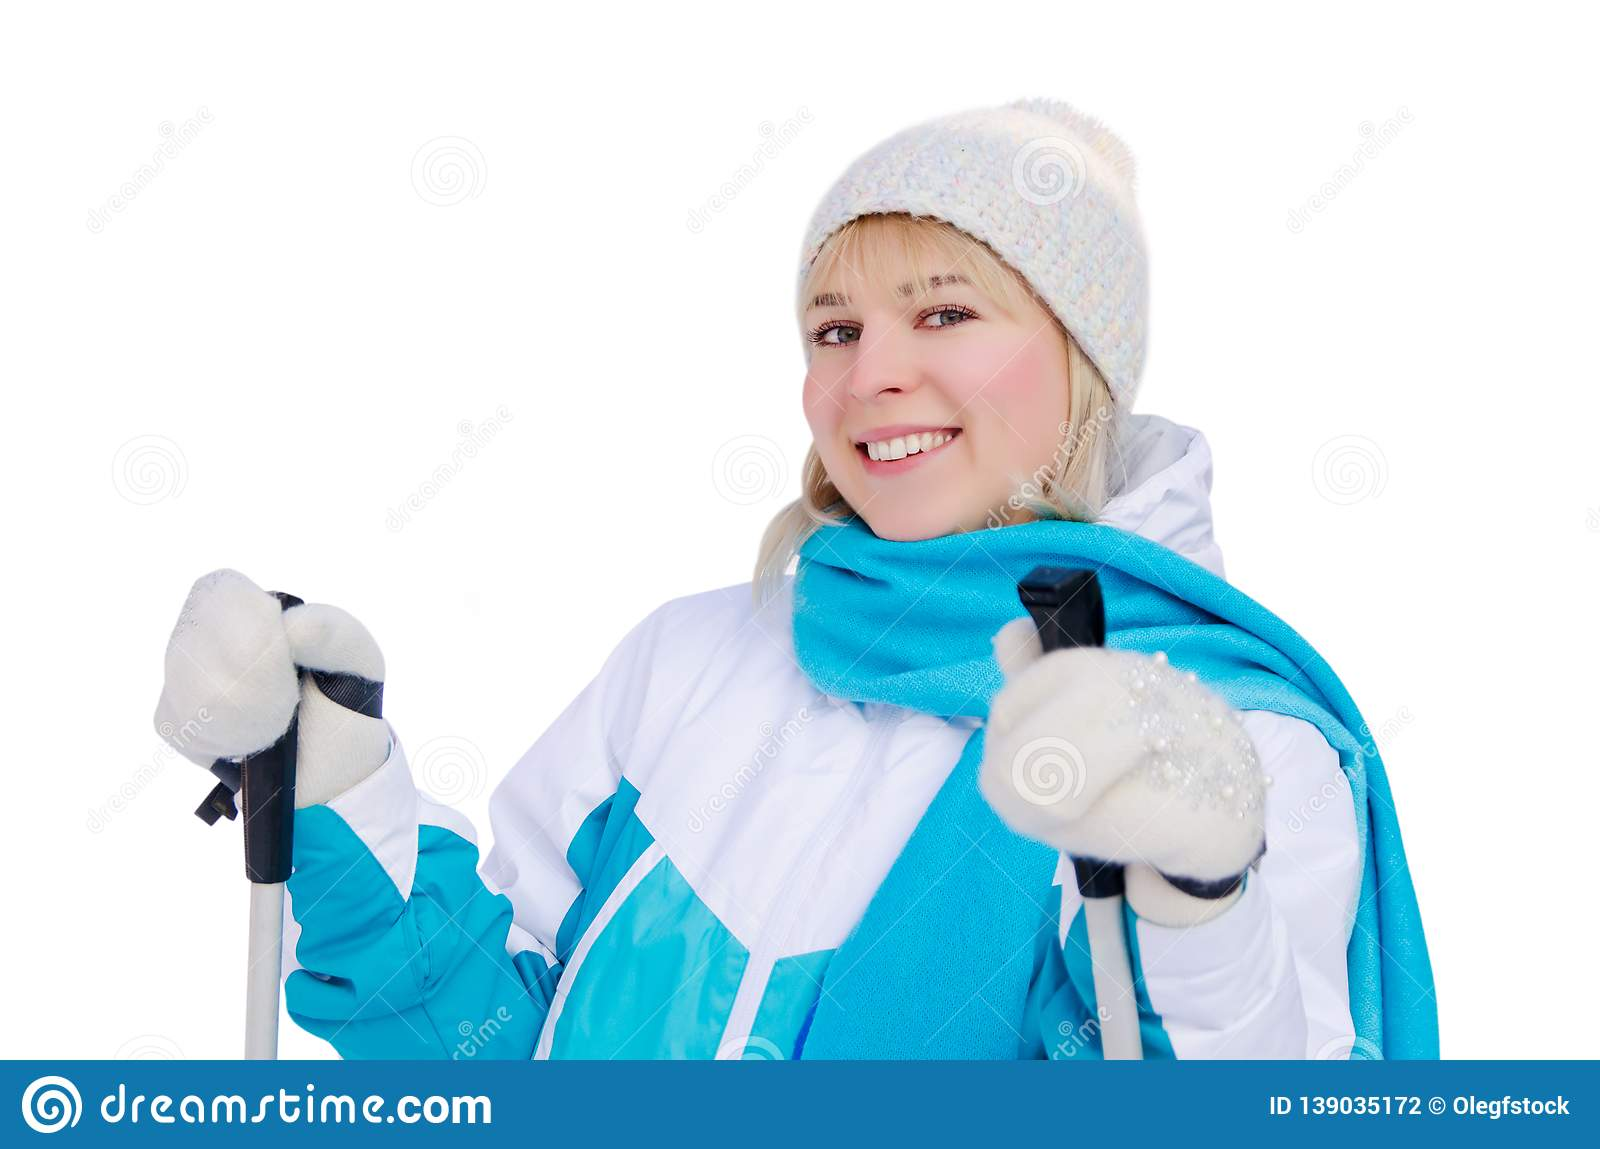 Attractive blonde girl in sports jacket, hat and blue scarf and ith ski poles in her hands with smile looking at the camera.